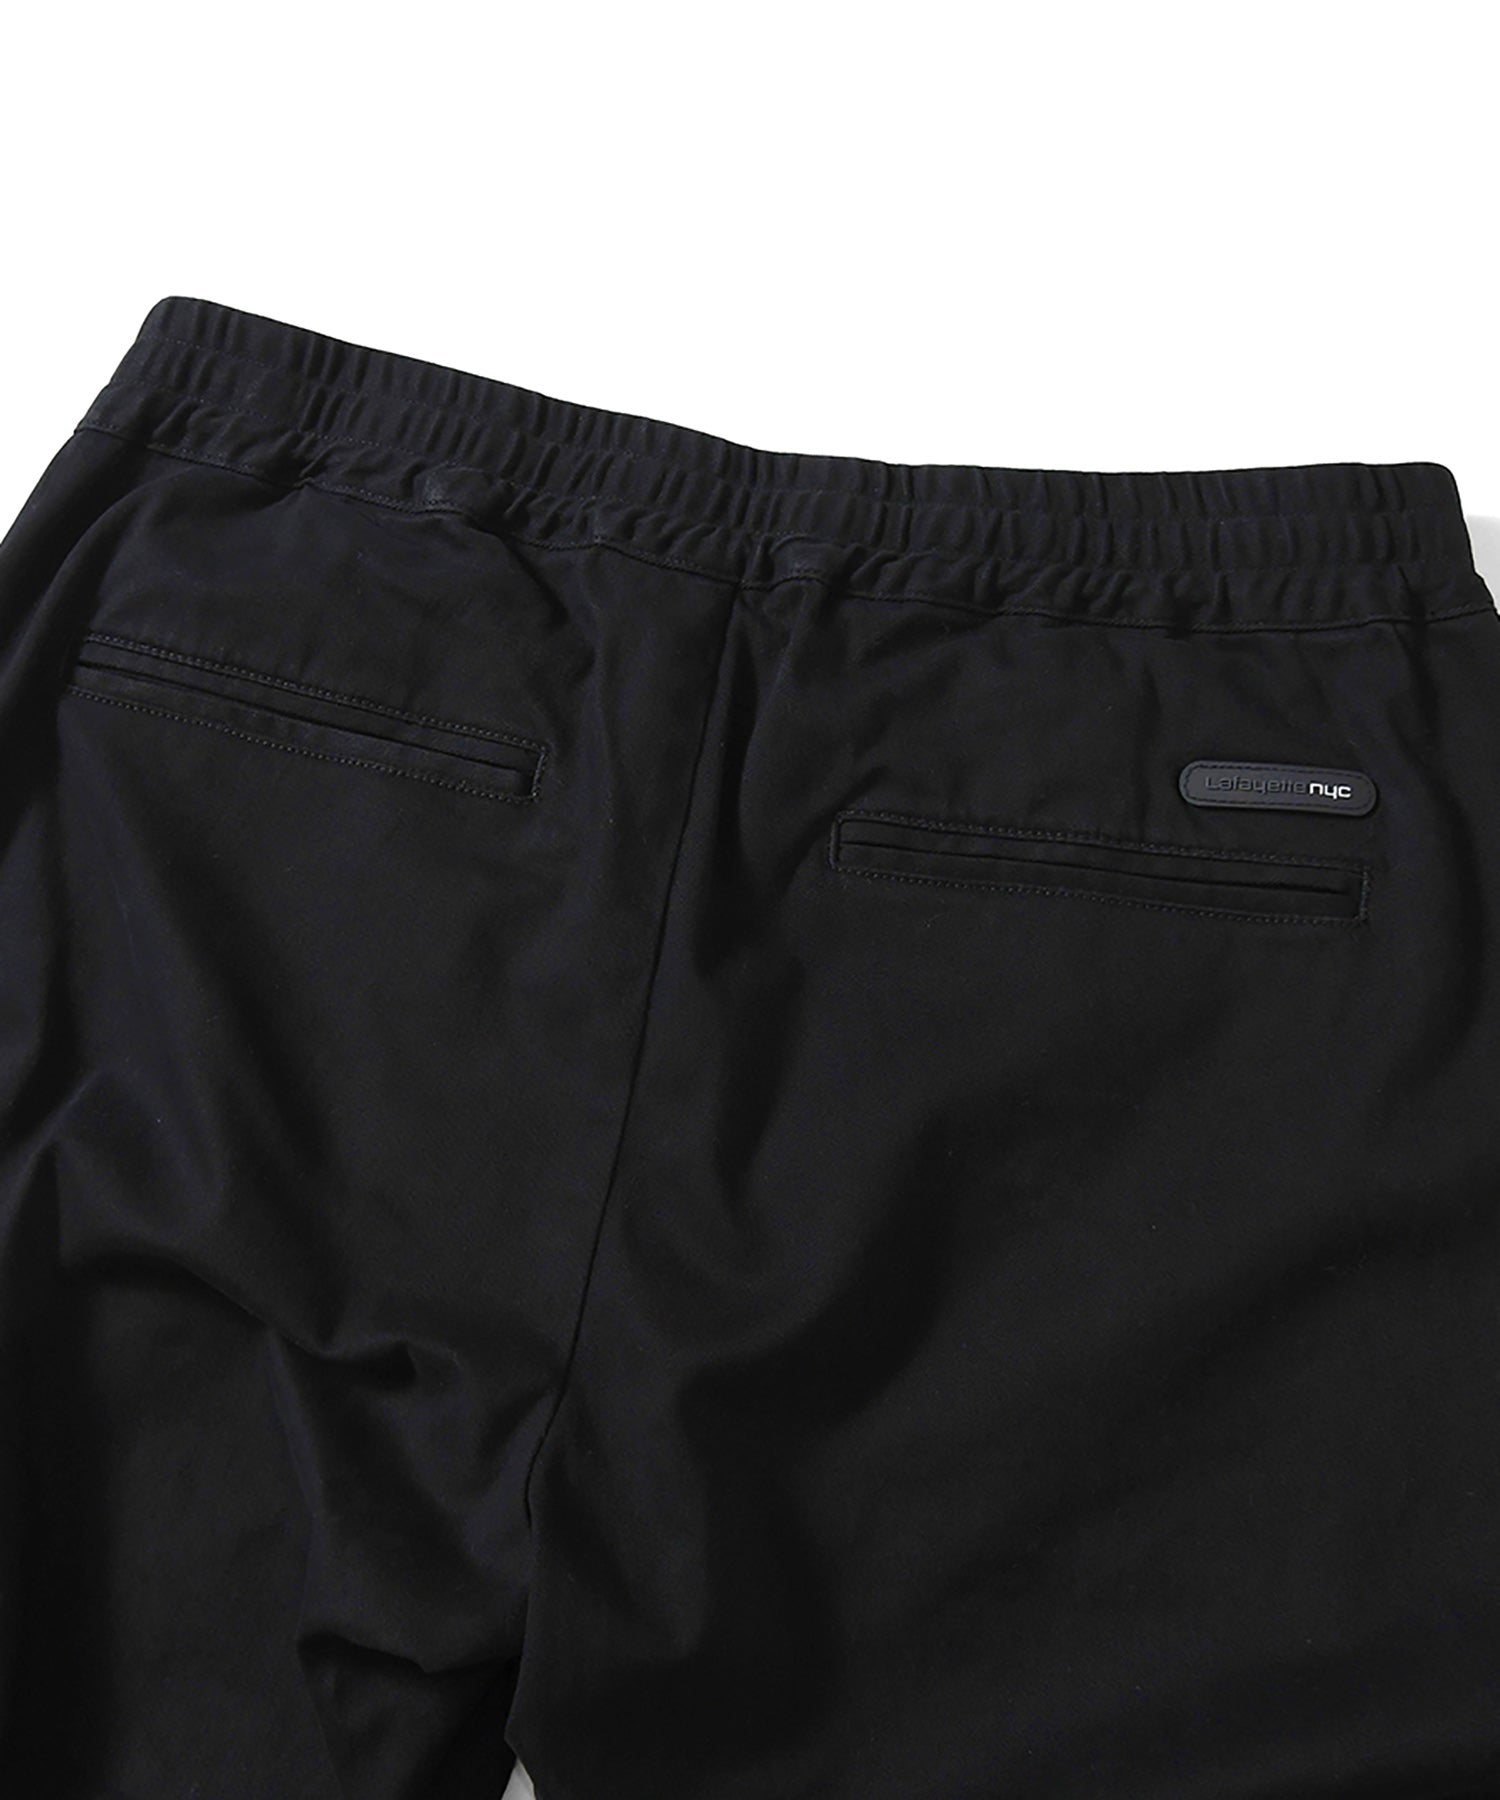 LA201202 STRETCH JOGGER PANTS BLACK